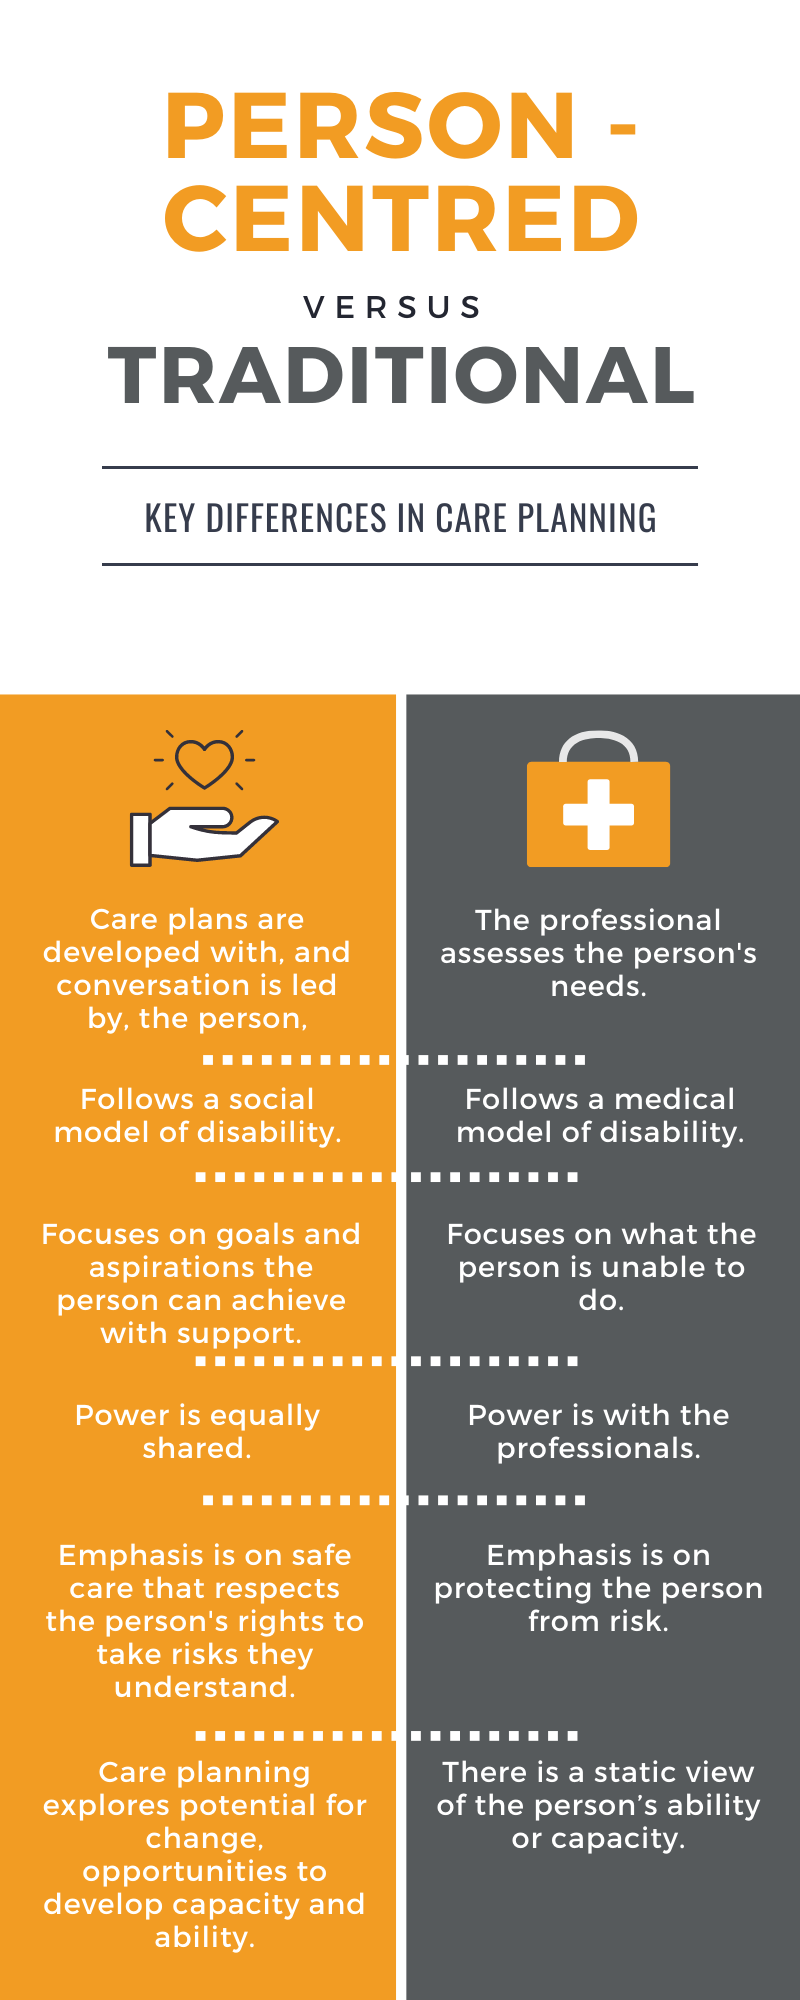 A table showing the differences between person-centred and traditional care approaches